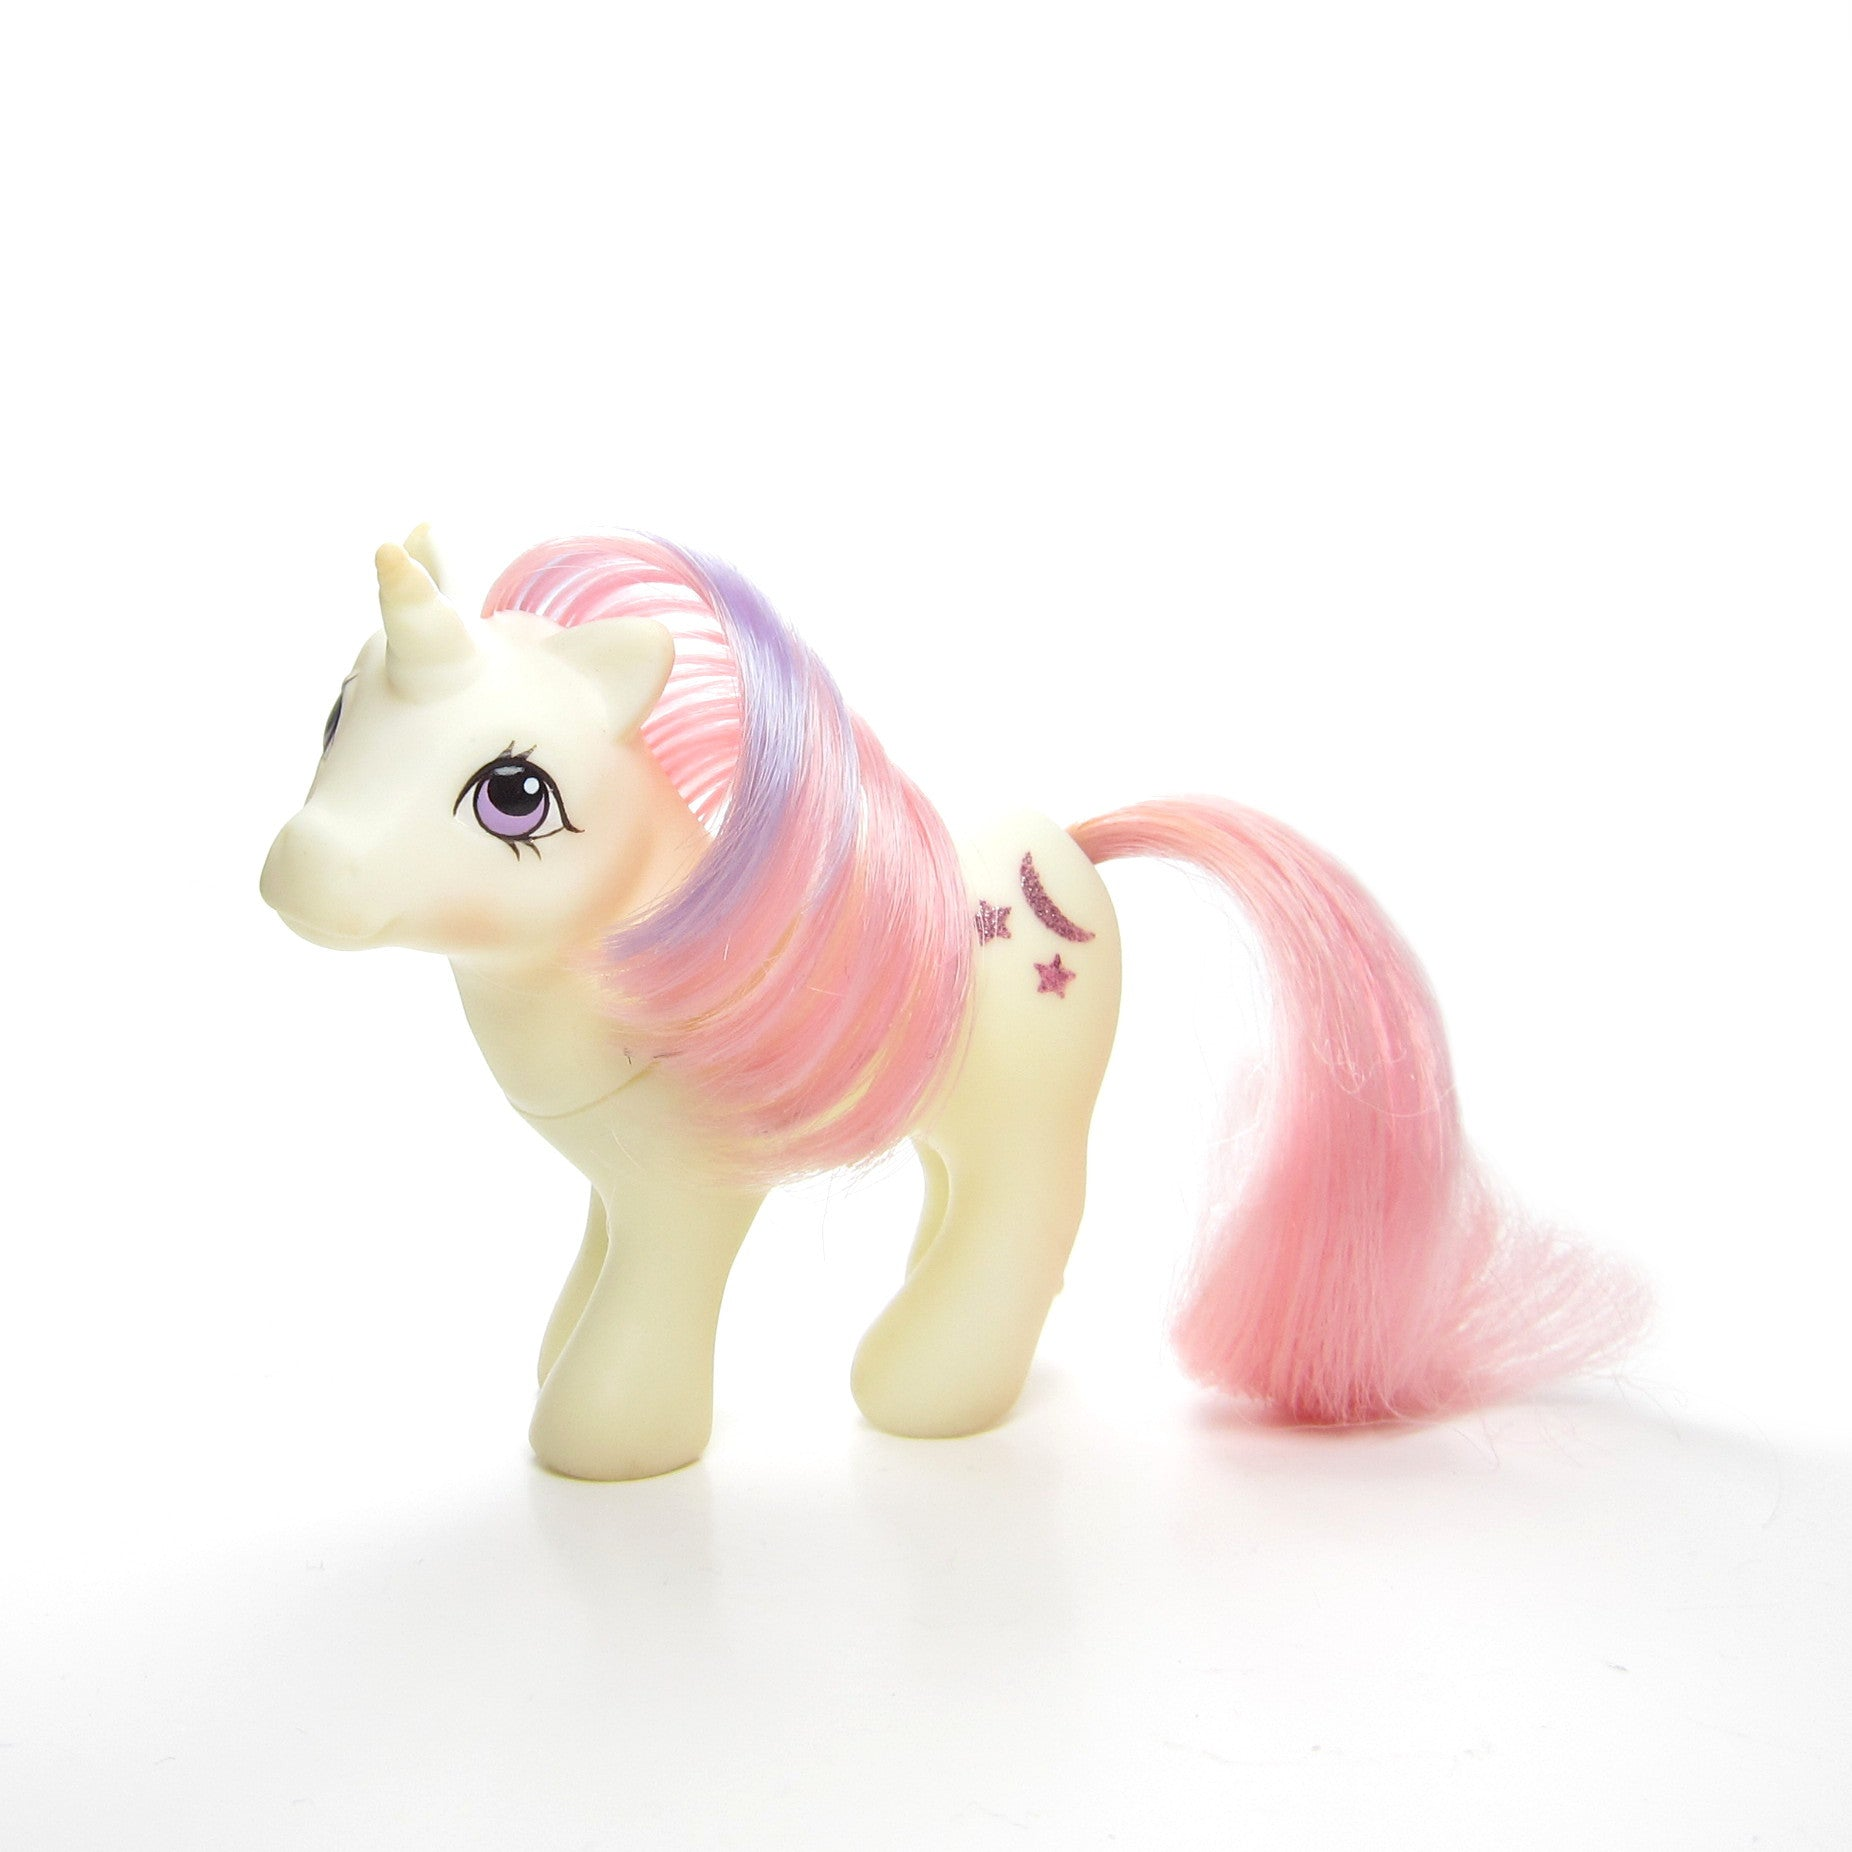 Baby Moondancer unicorn pony